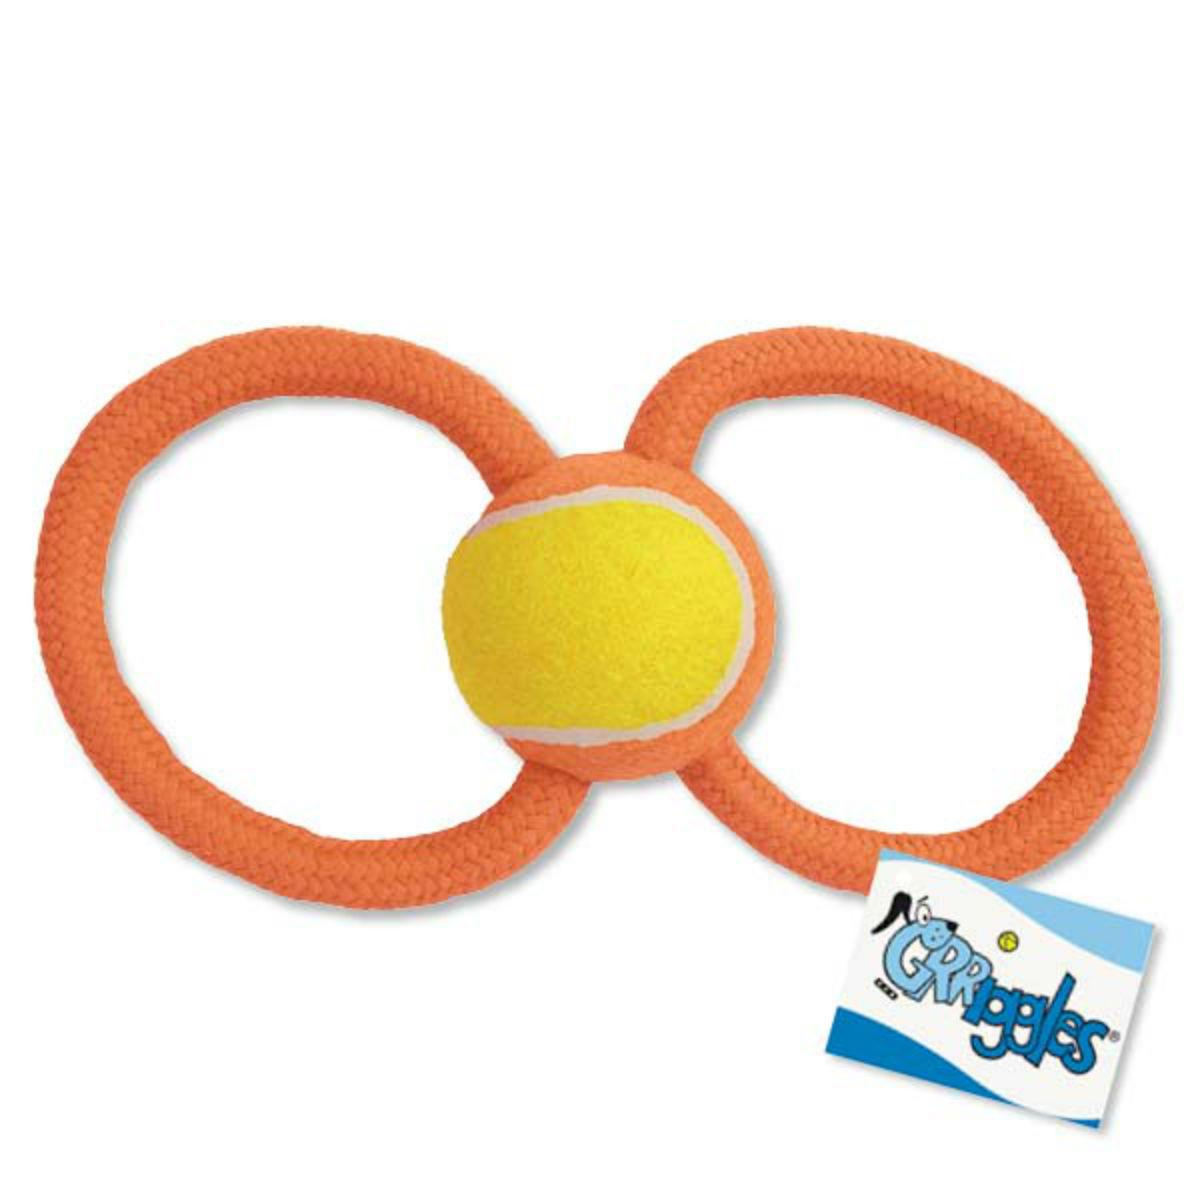 Grriggles Ruff Rope Figure Eights Dog Toy